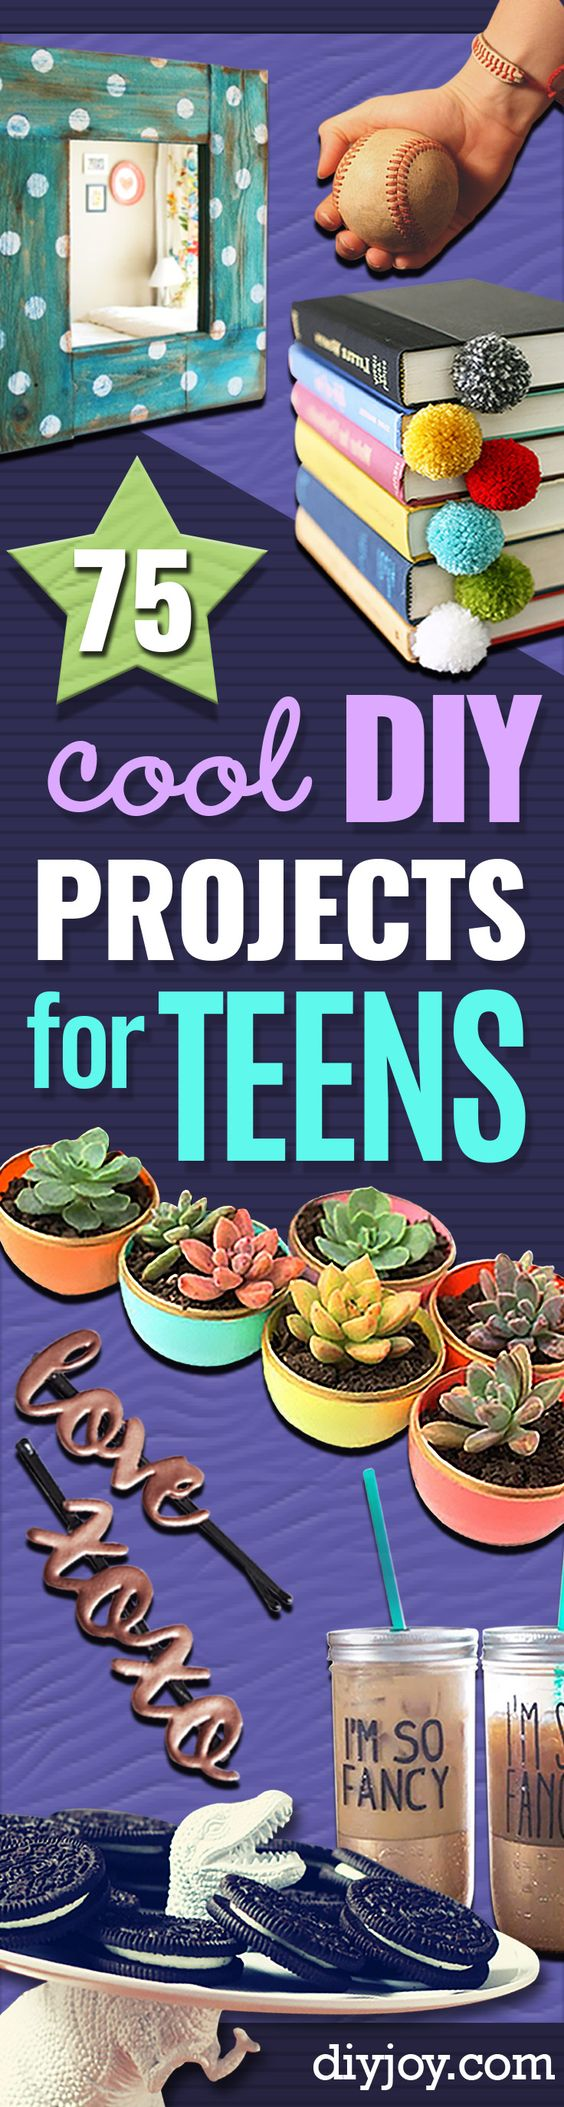 Teen crafts teenagers and teen bedroom on pinterest for Diy projects for tweens